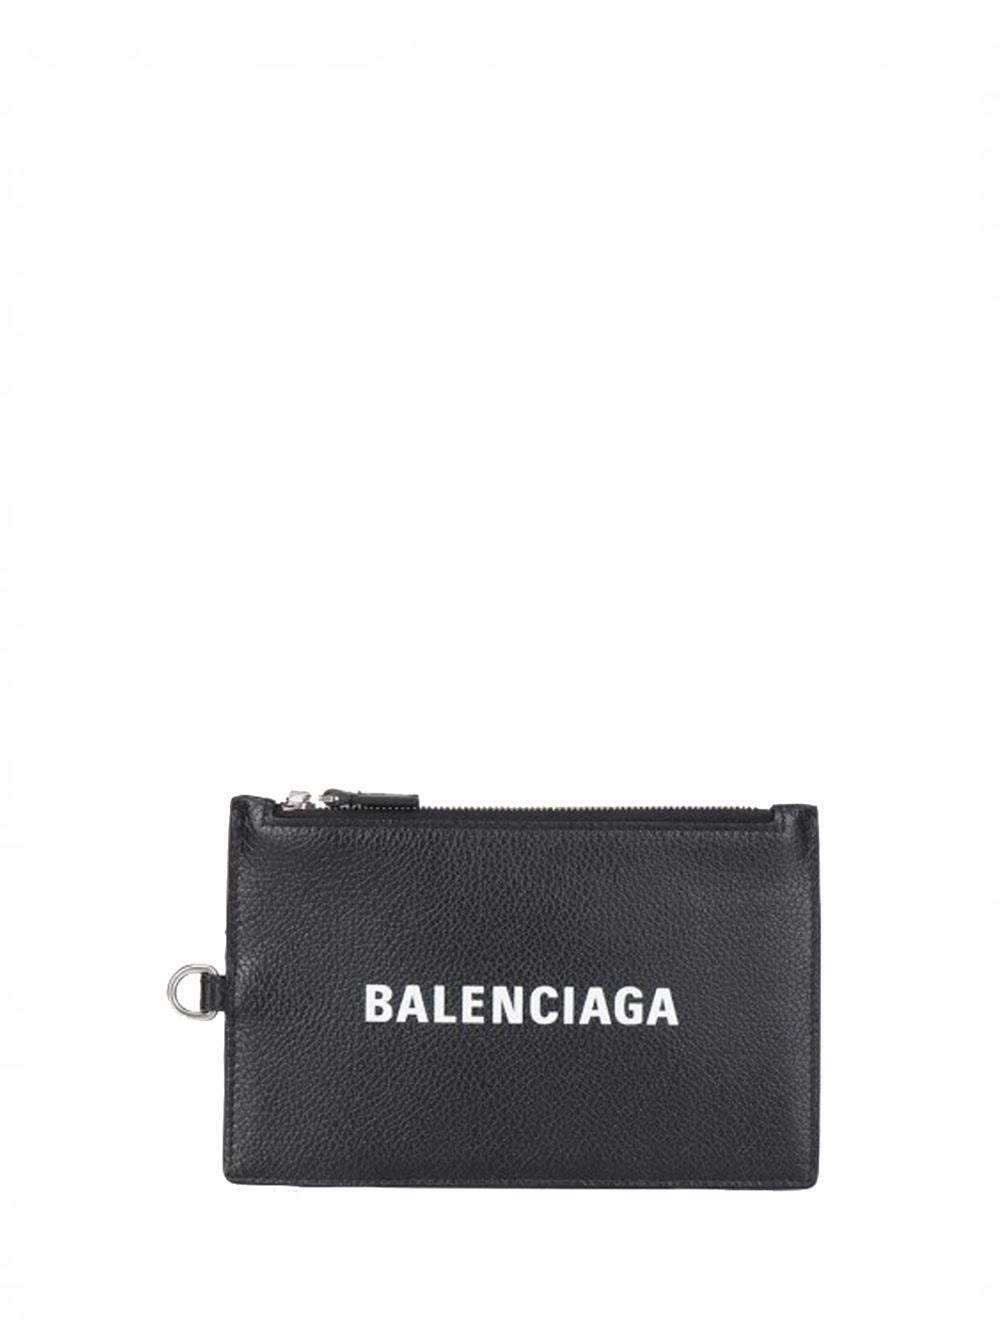 BALENCIAGA Zipped Cash Holder Black - Maison De Fashion